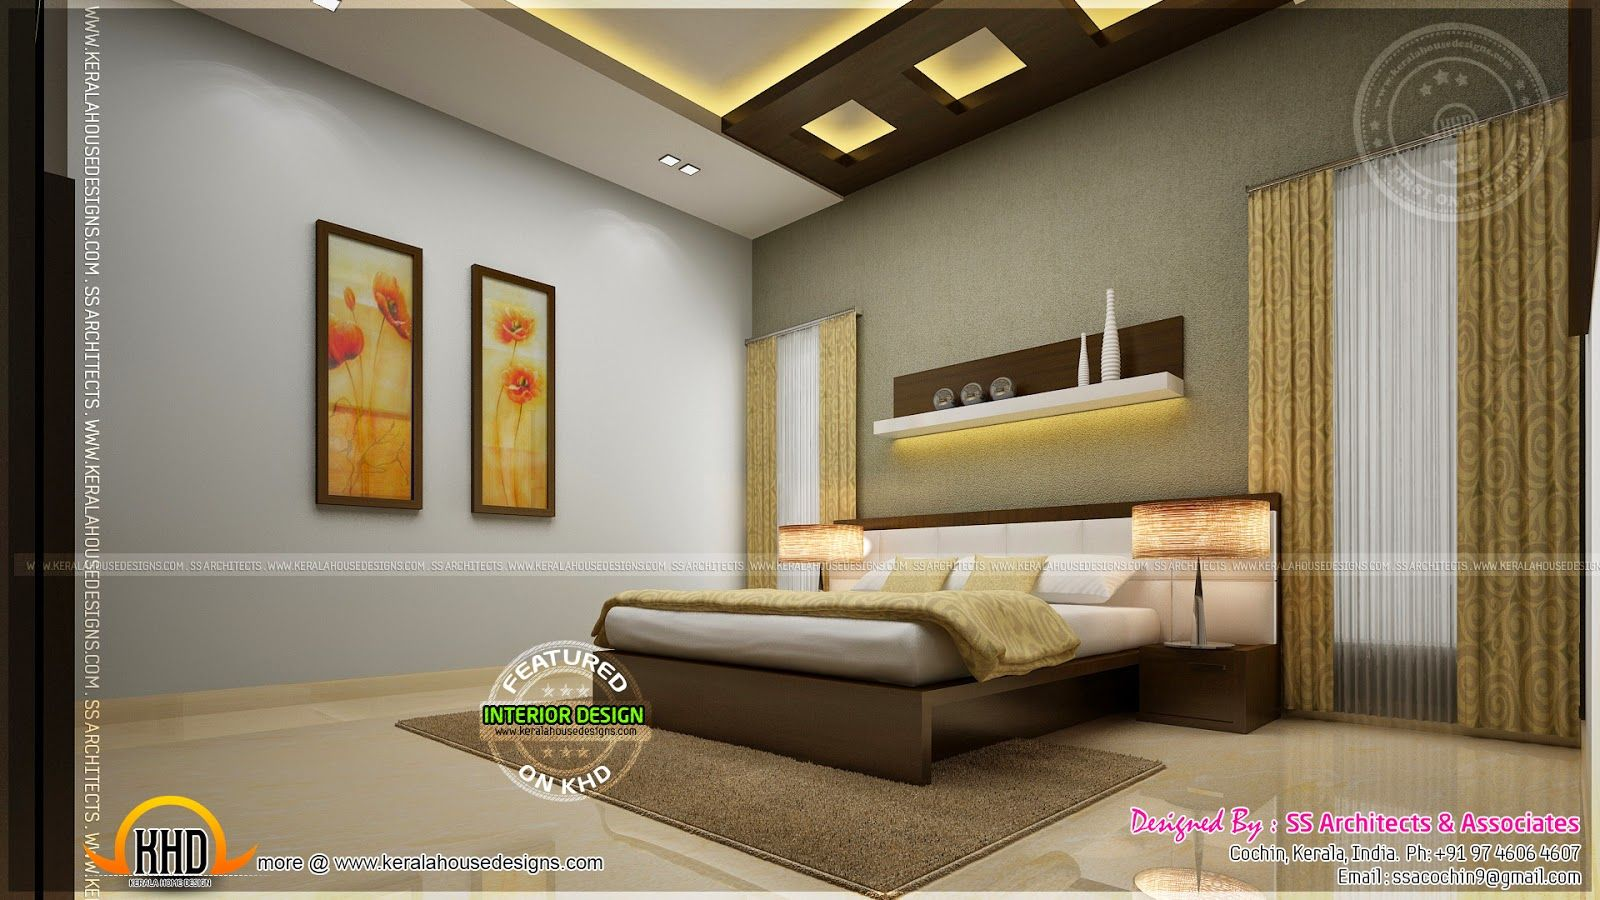 Indian master bedroom interior design google search for Best house interior designs in india